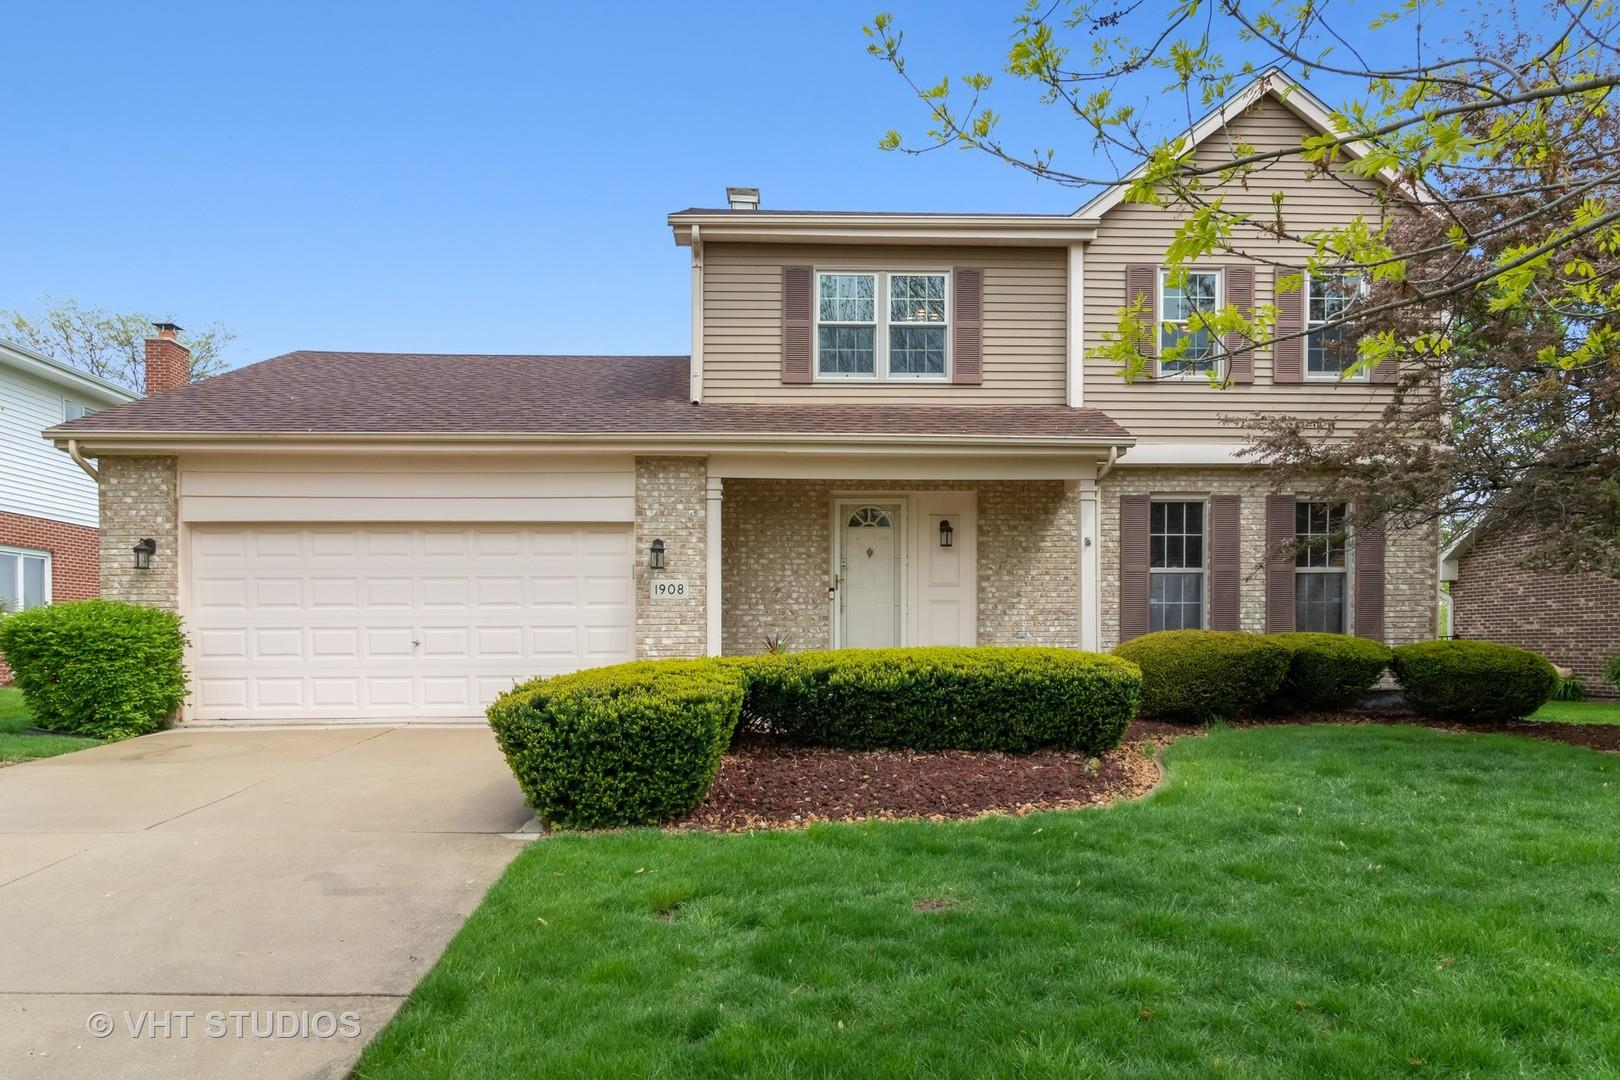 1908 Chippingham Road, Woodridge, IL 60517 - #: 11086022